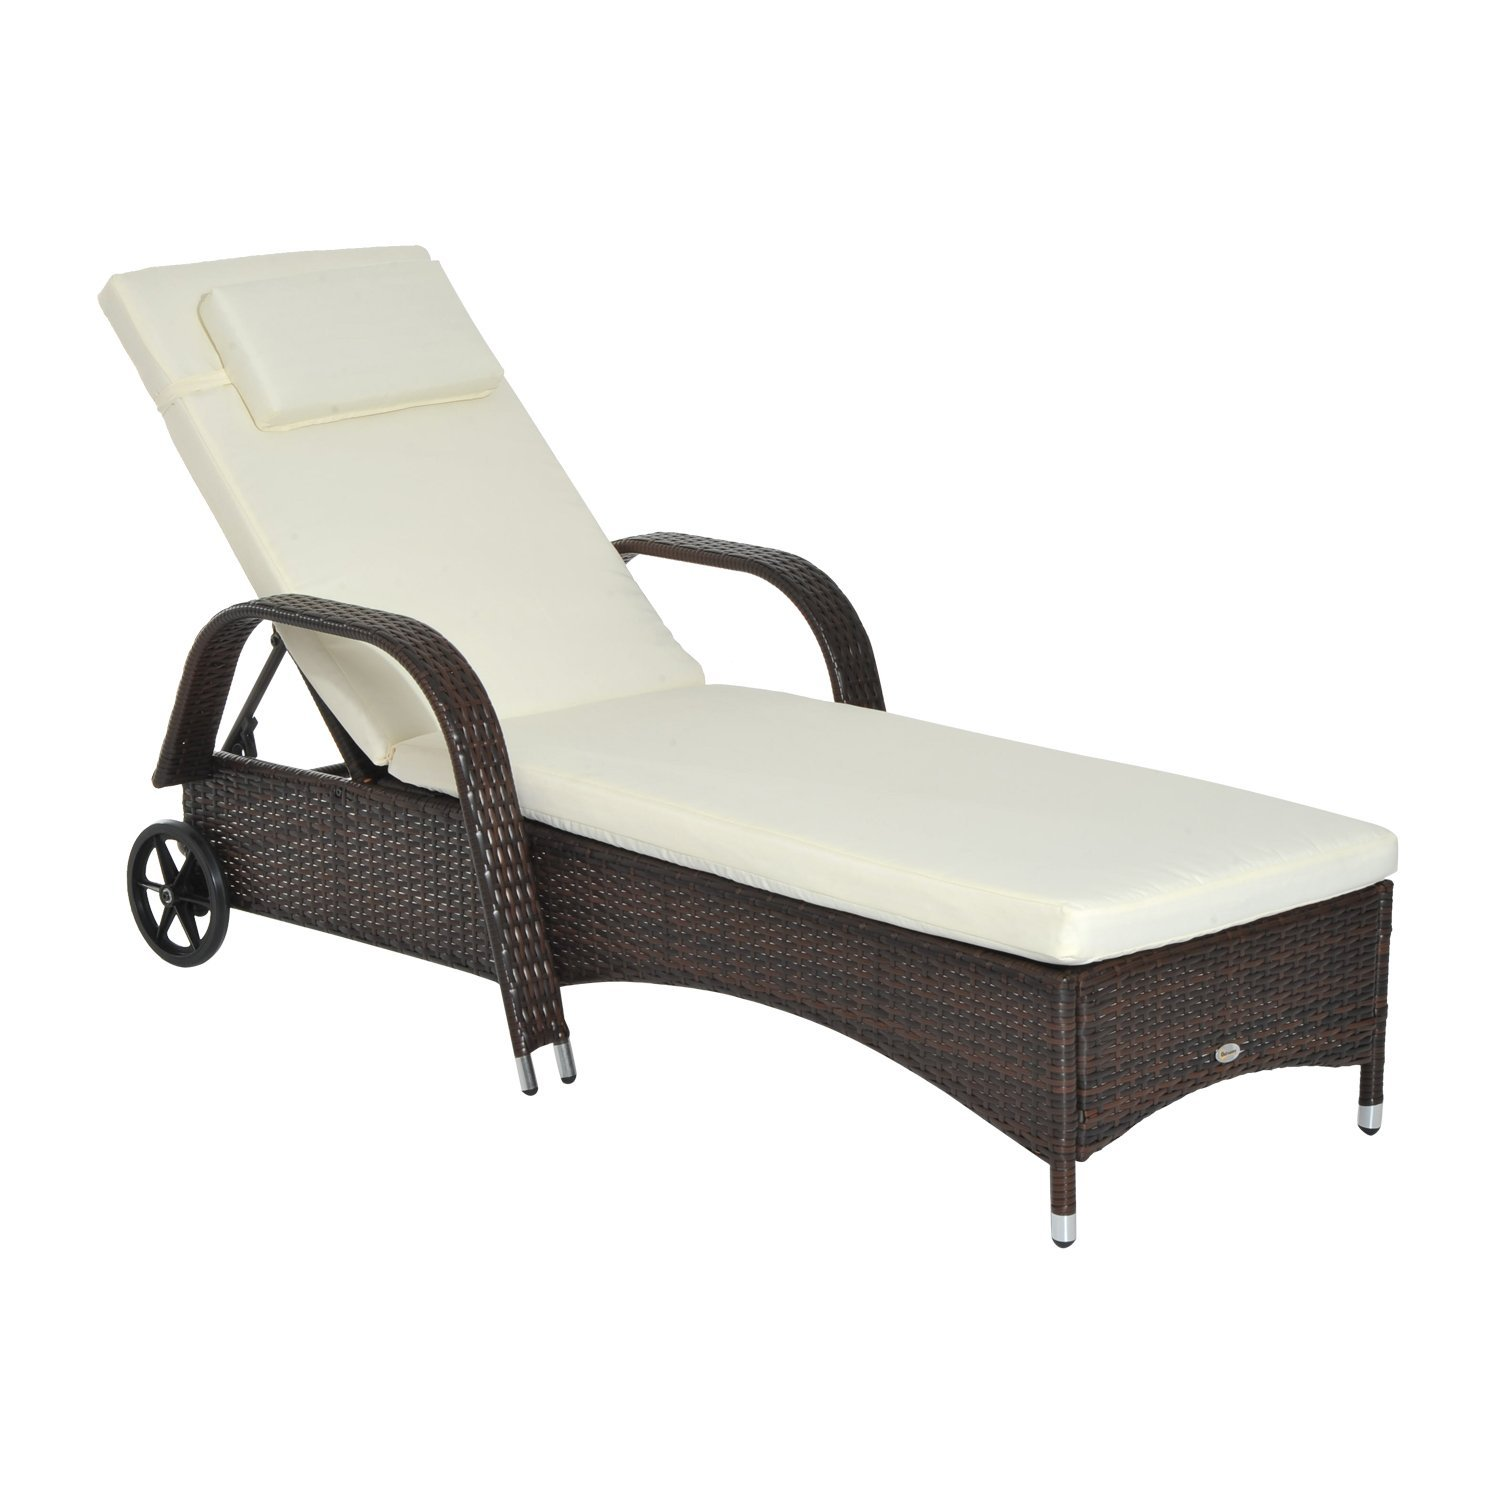 Outsunny Lounger Beach Sundresses Relax With Wheels Padded Rattan Garden Chair Brown